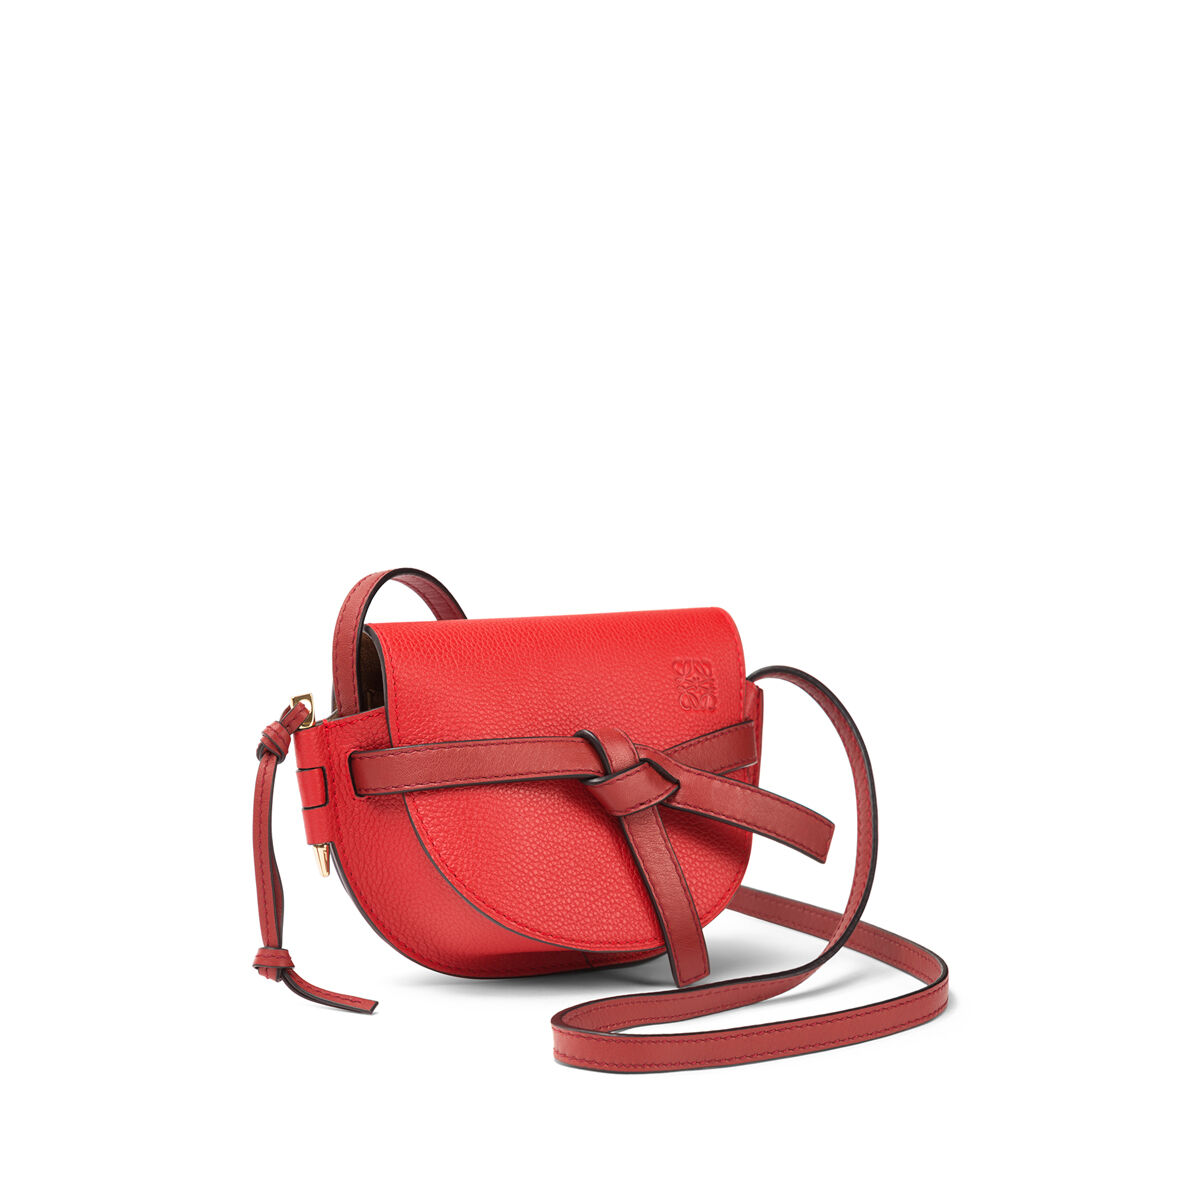 LOEWE ミニゲートバッグ Scarlet Red/Burnt Red all